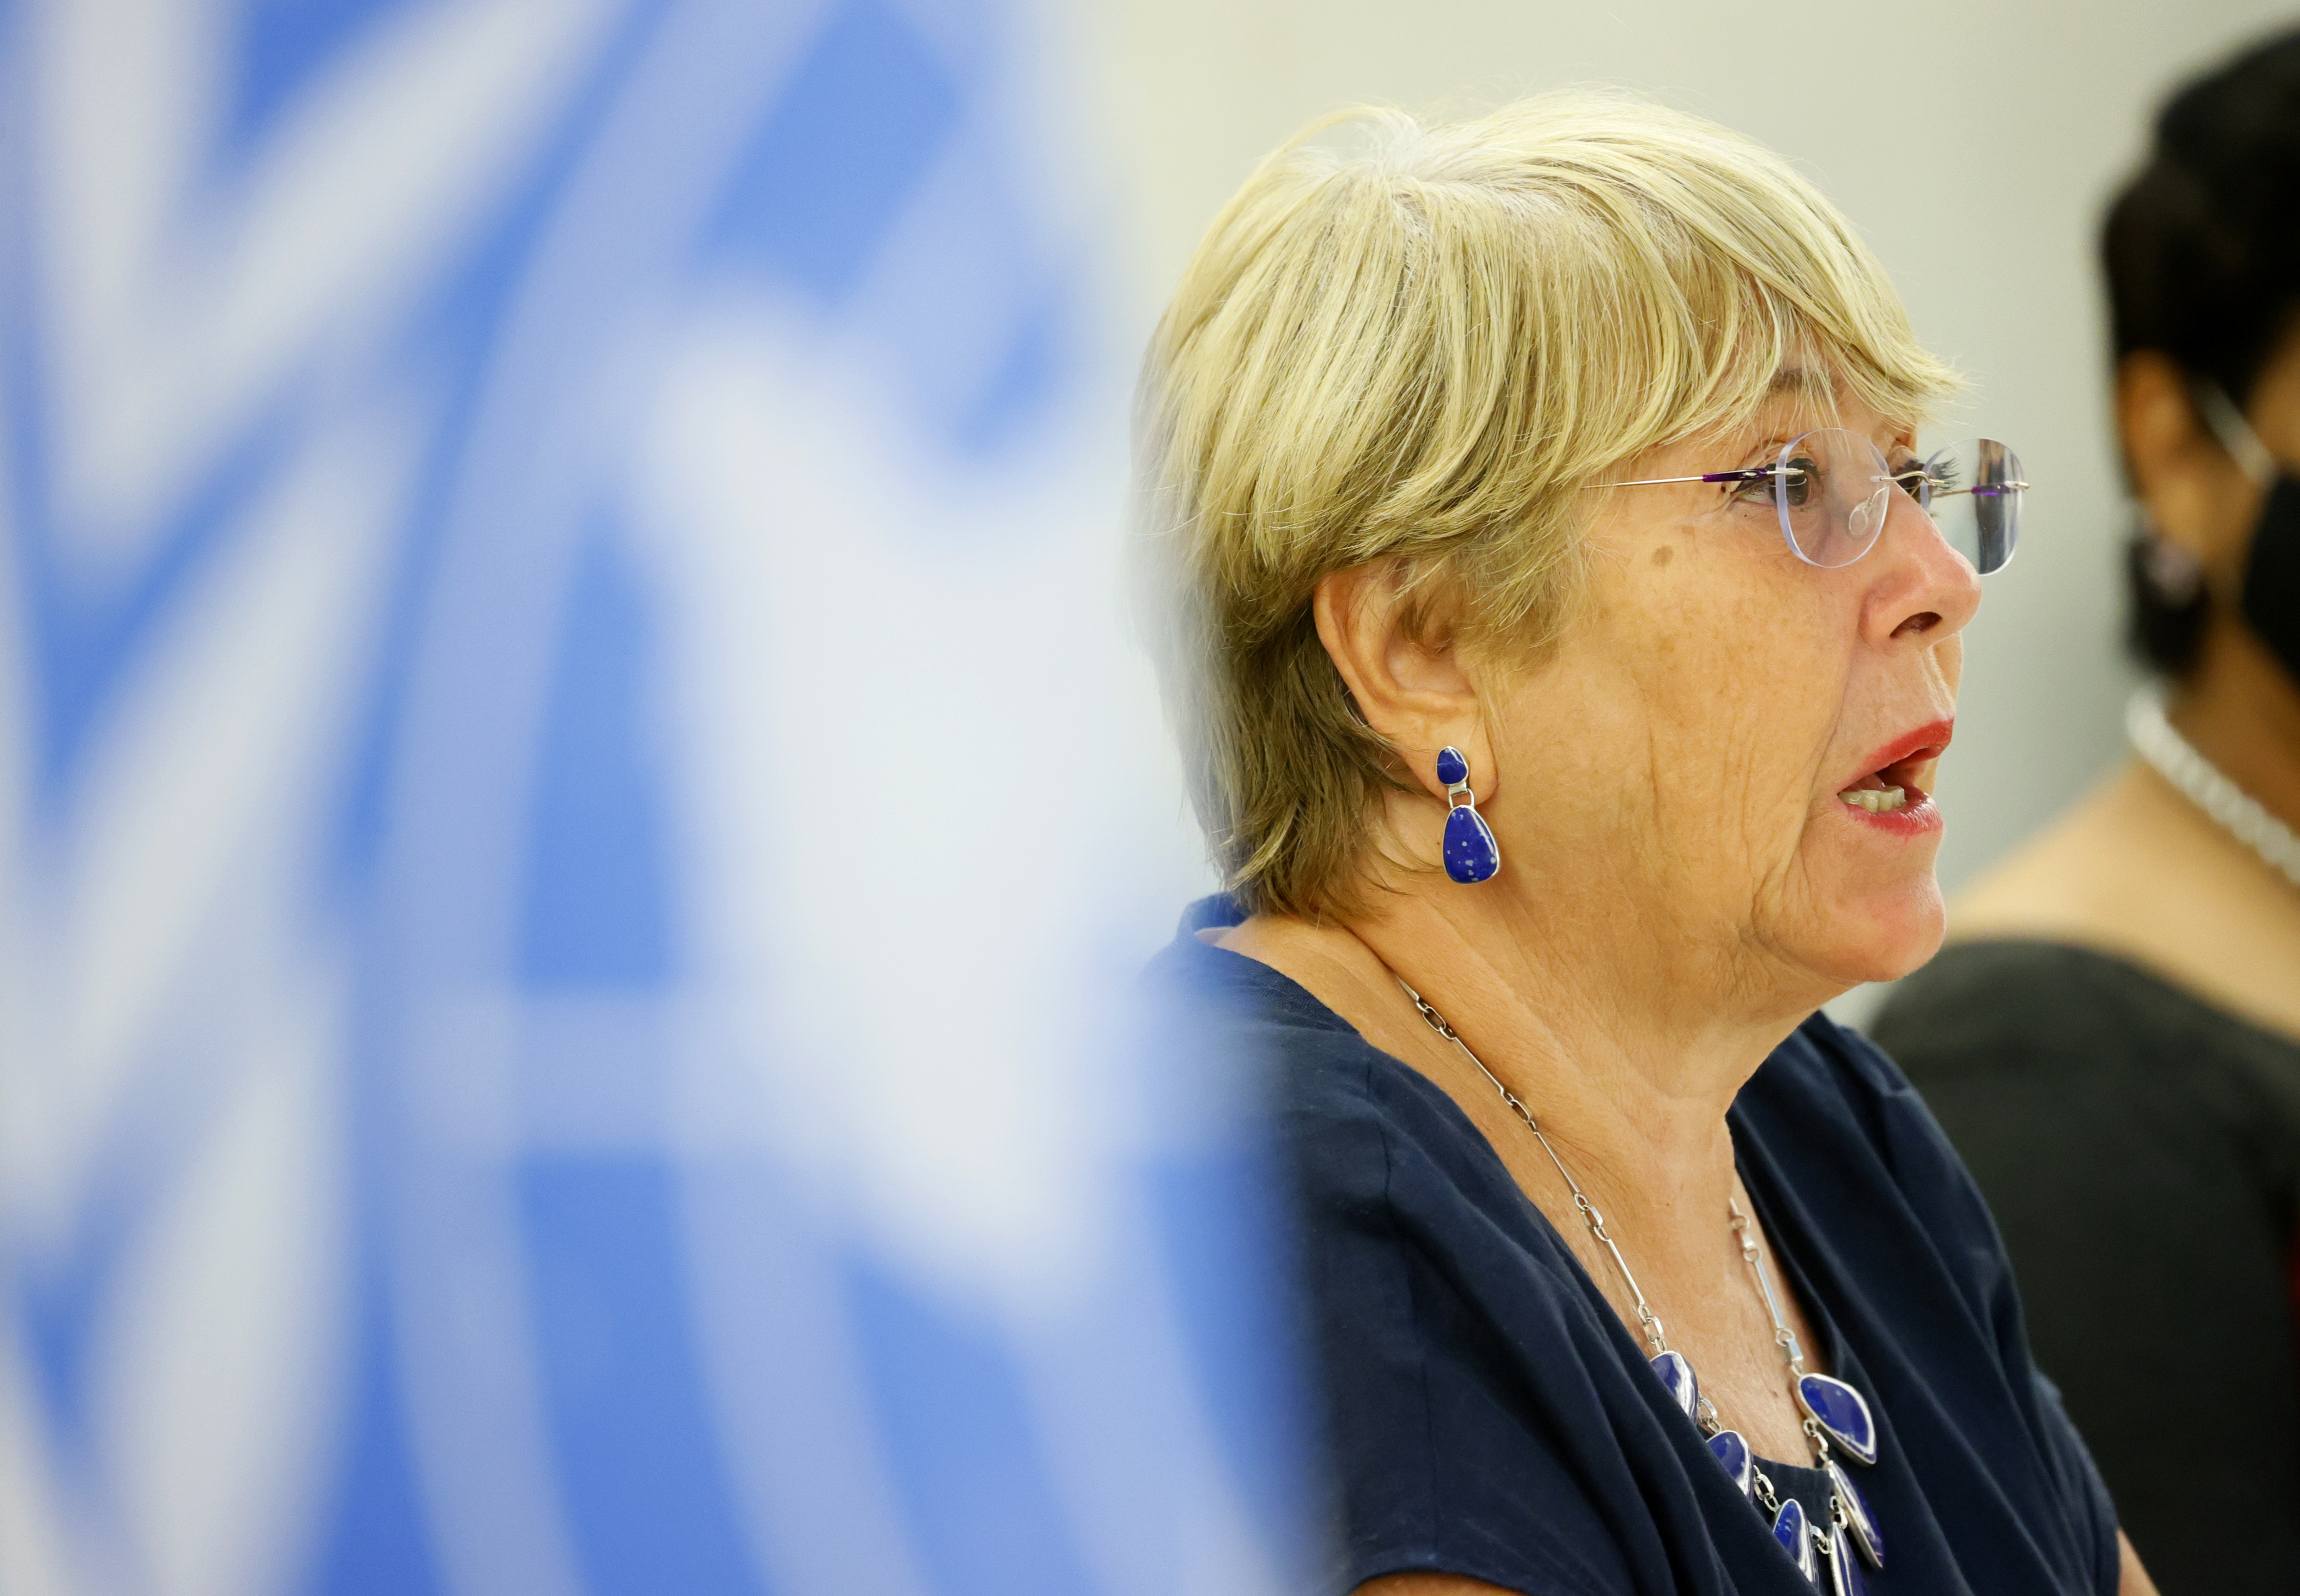 U.N. High Commissioner for Human Rights Michelle Bachelet attends a session of the Human Rights Council at the United Nations in Geneva, Switzerland, September 13, 2021. REUTERS/Denis Balibouse